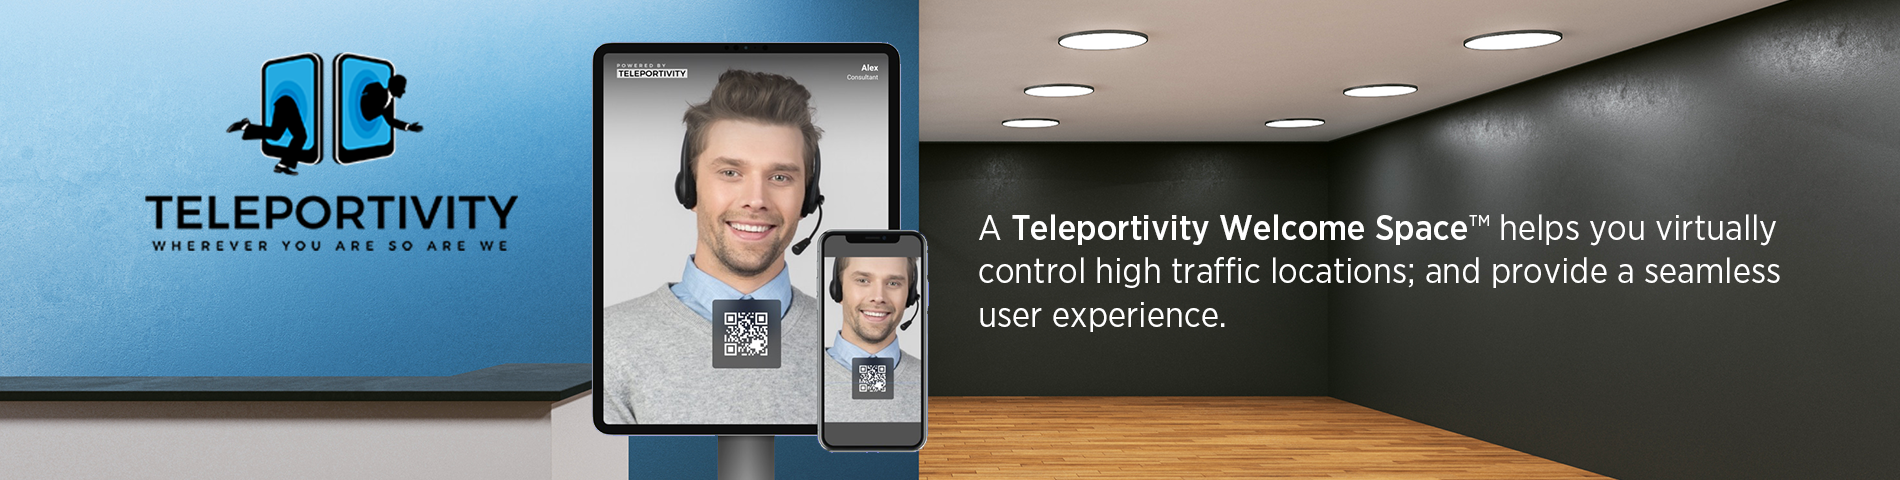 Teleportivity Welcome Space™ by Liberty AV